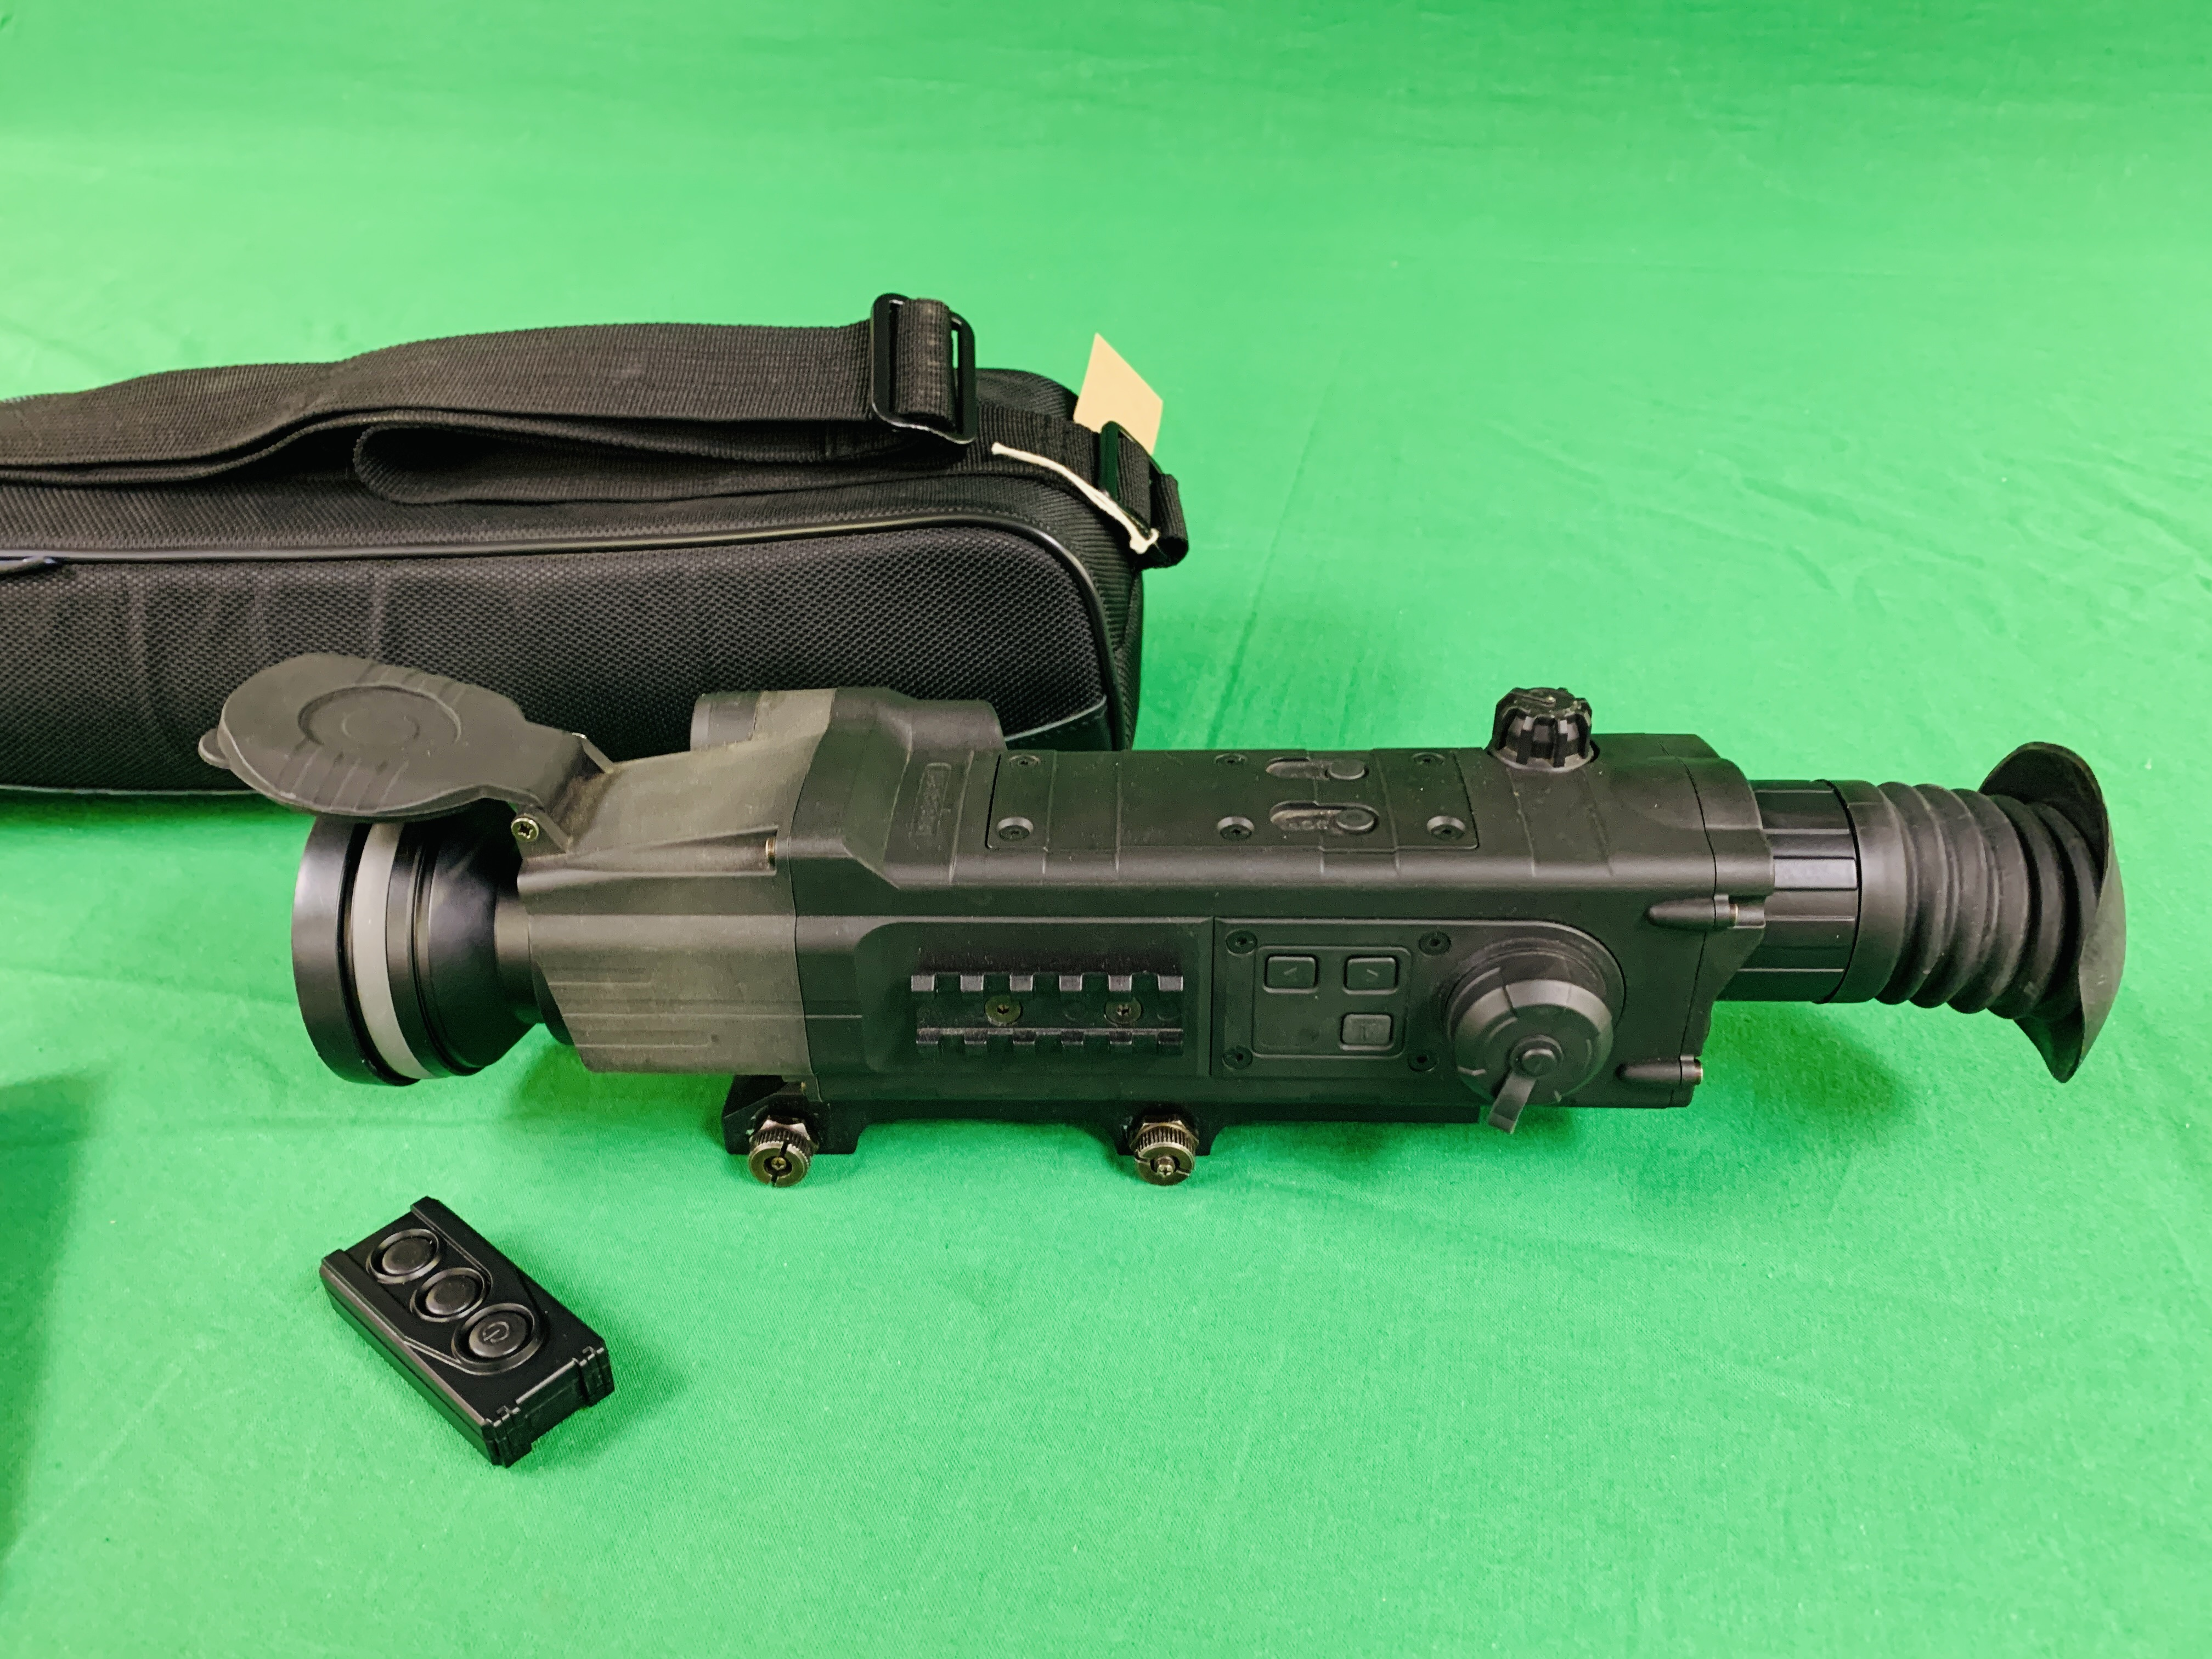 PULSAR N750 DIGI SIGHT RIFLE SCOPE COMPLETE WITH SONY TELE CONVERSION LENS ALONG WITH INSTRUCTION - Image 5 of 8